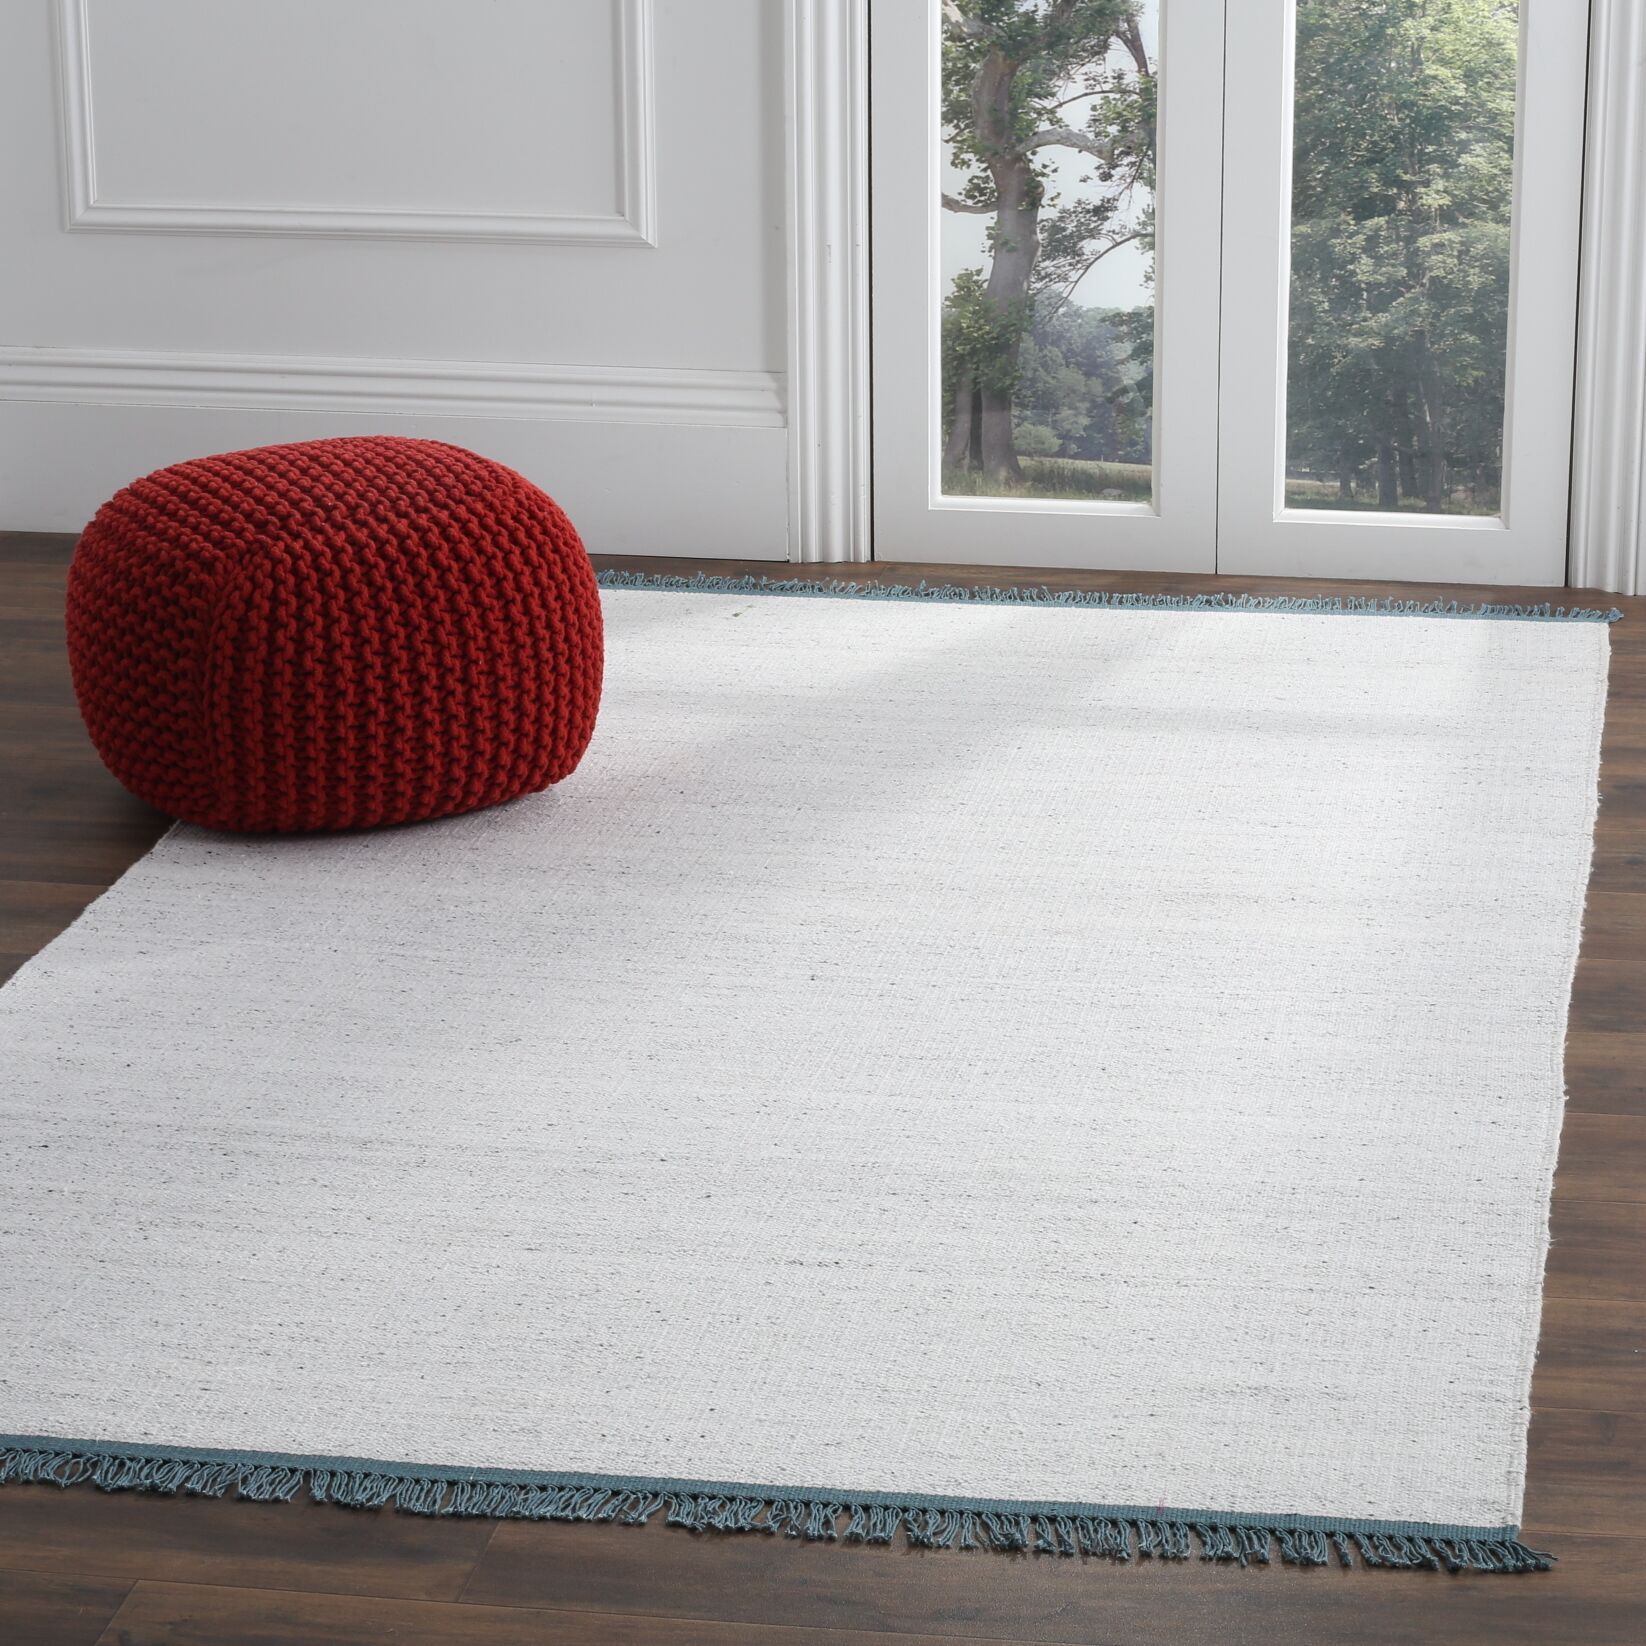 Sojourn Hand-Woven Gray/Blue Area Rug Rug Size: Rectangle 5' x 8'